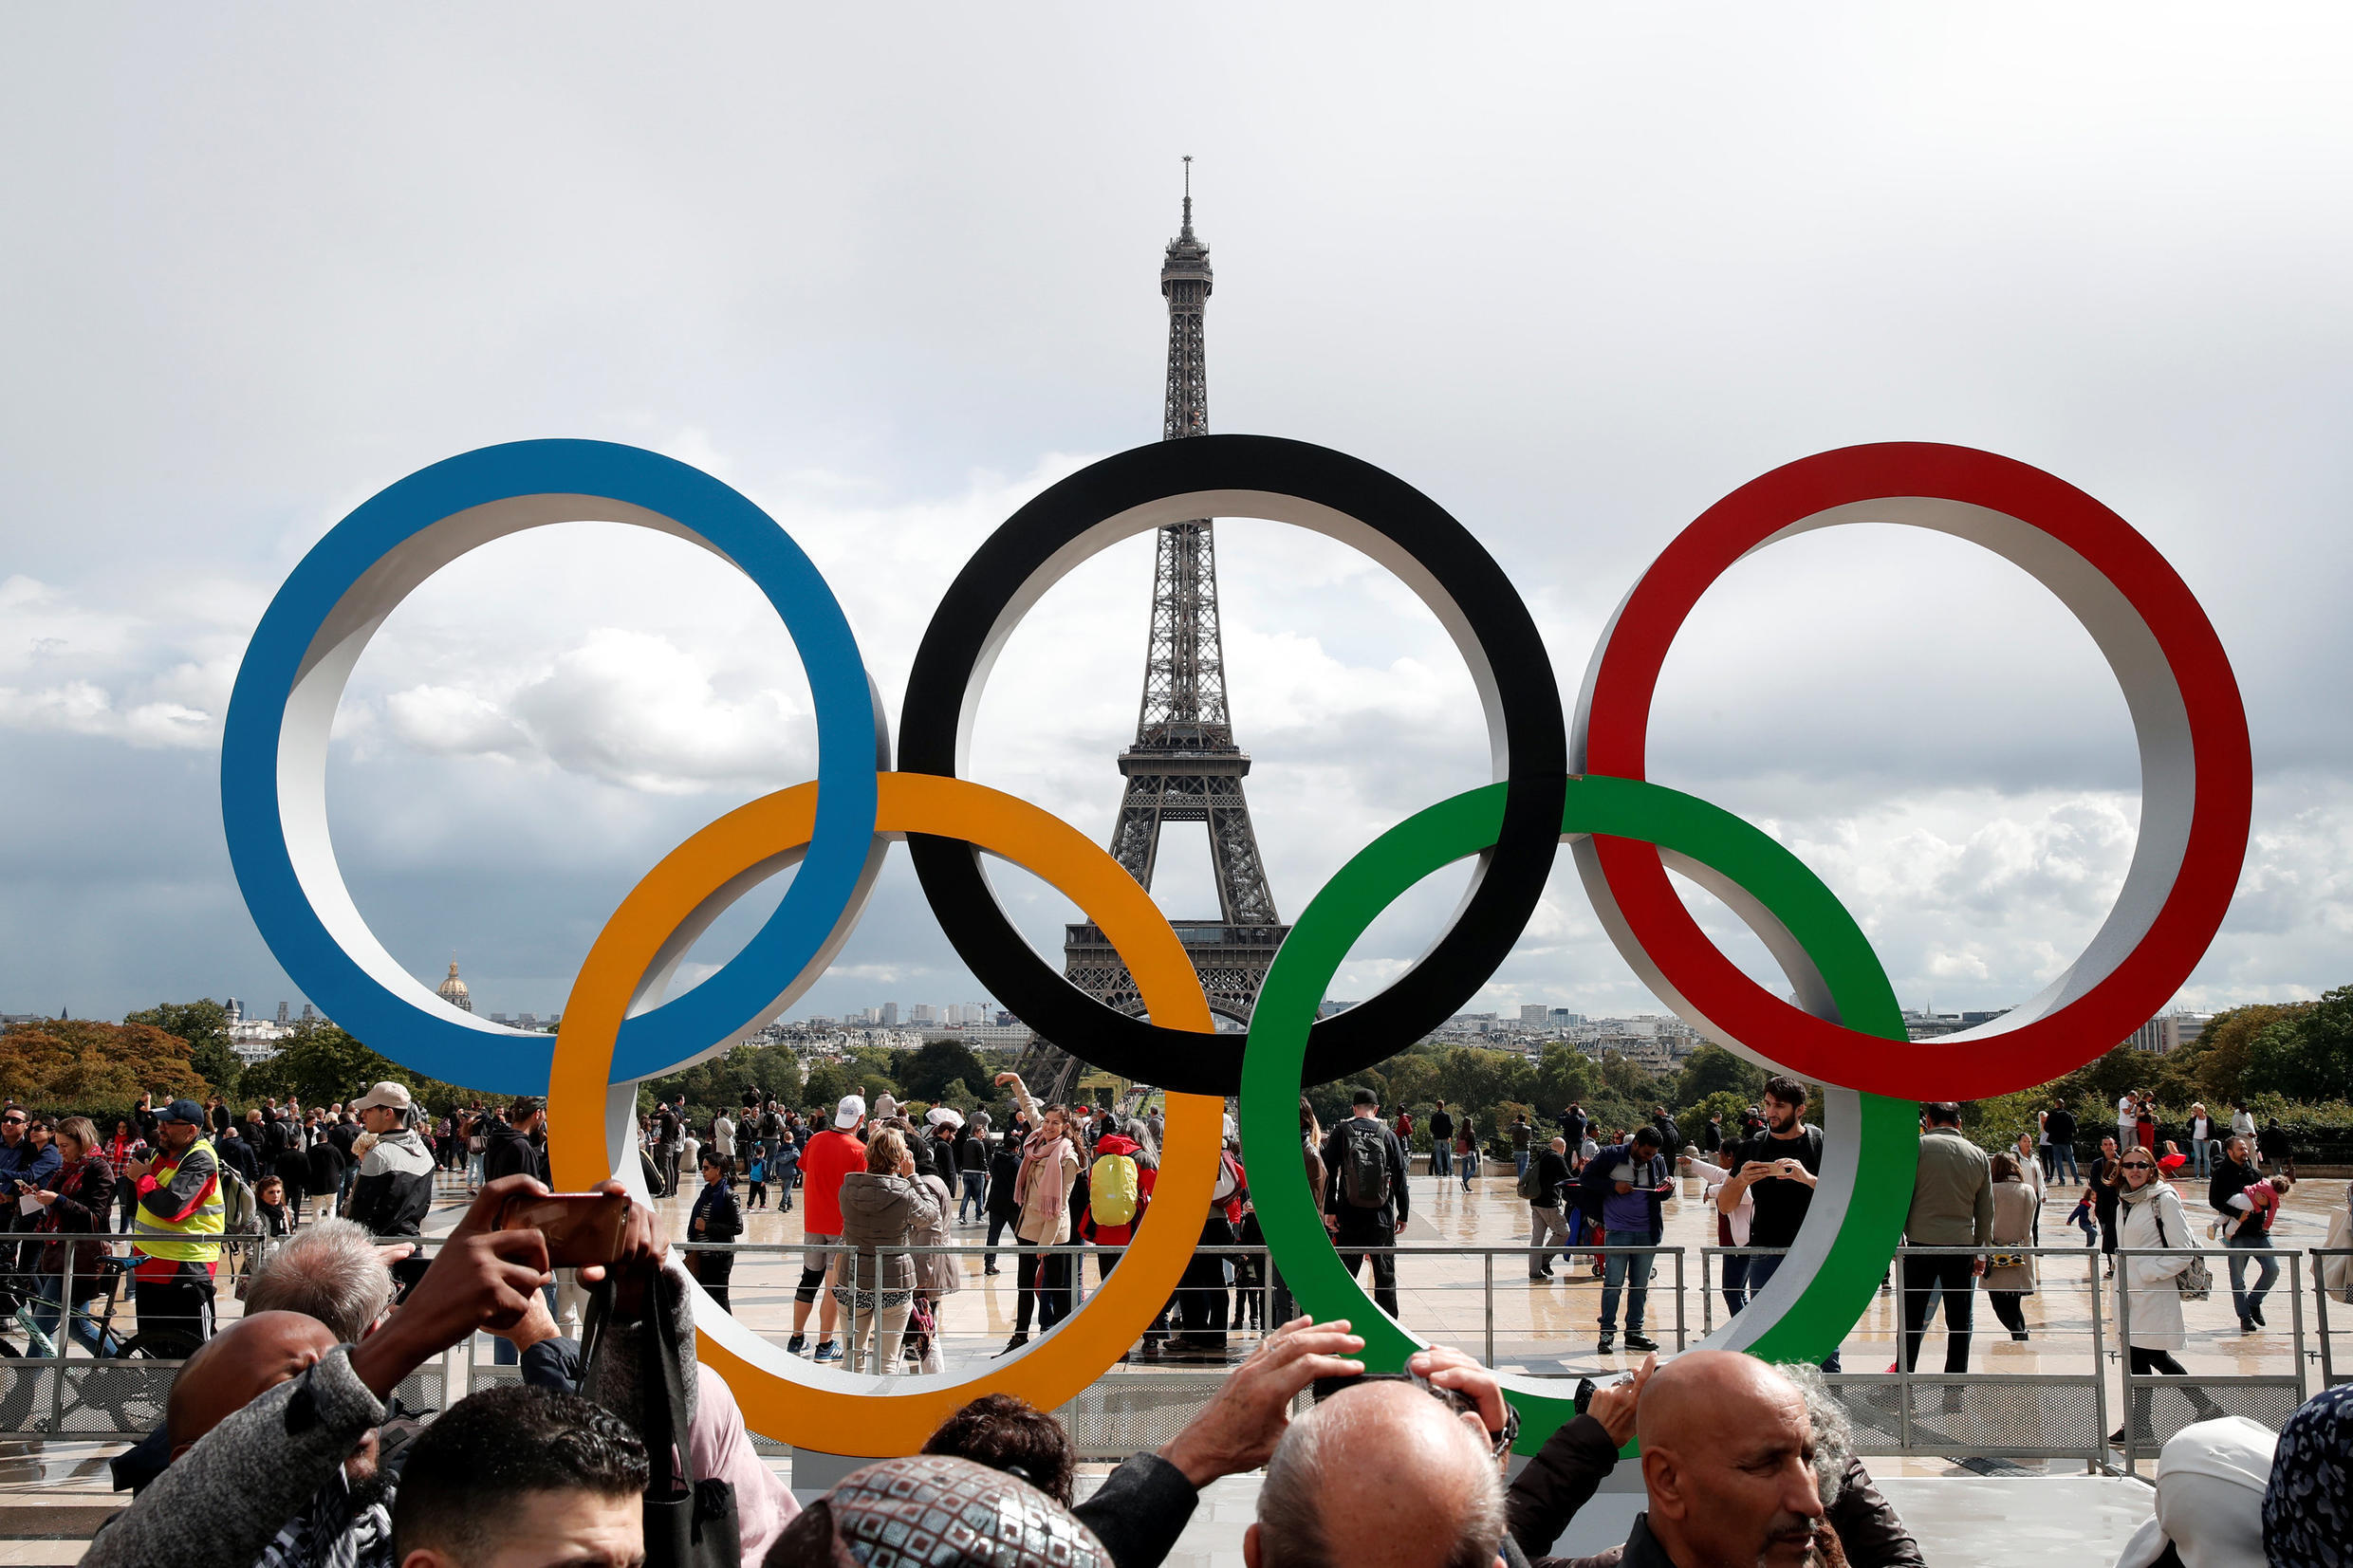 Olympic rings to celebrate the IOC official announcement that Paris won the 2024 Olympic bid